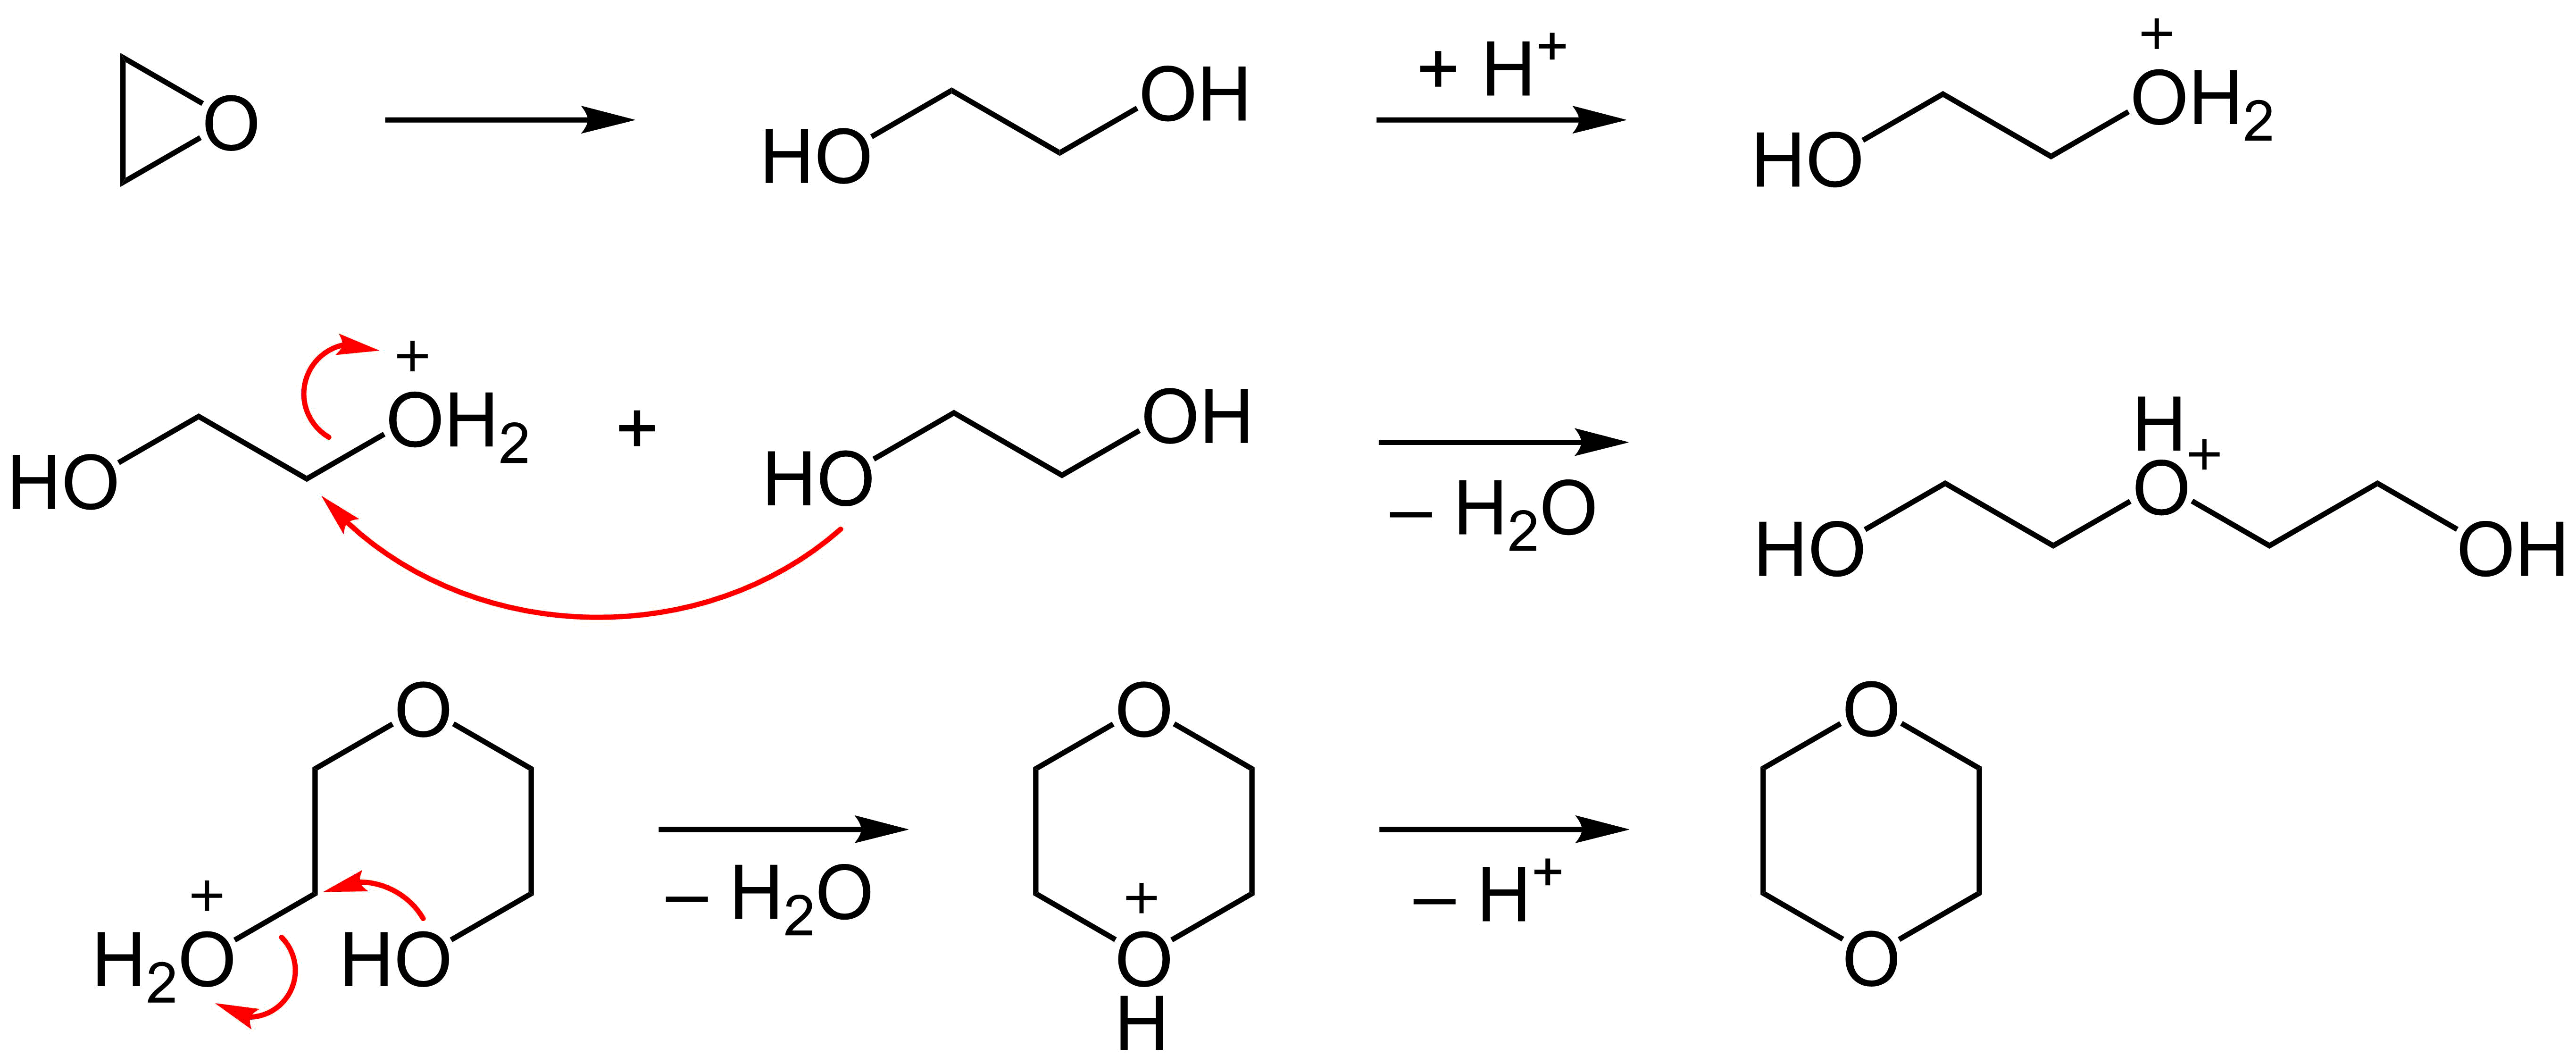 Mechanism of dimerization